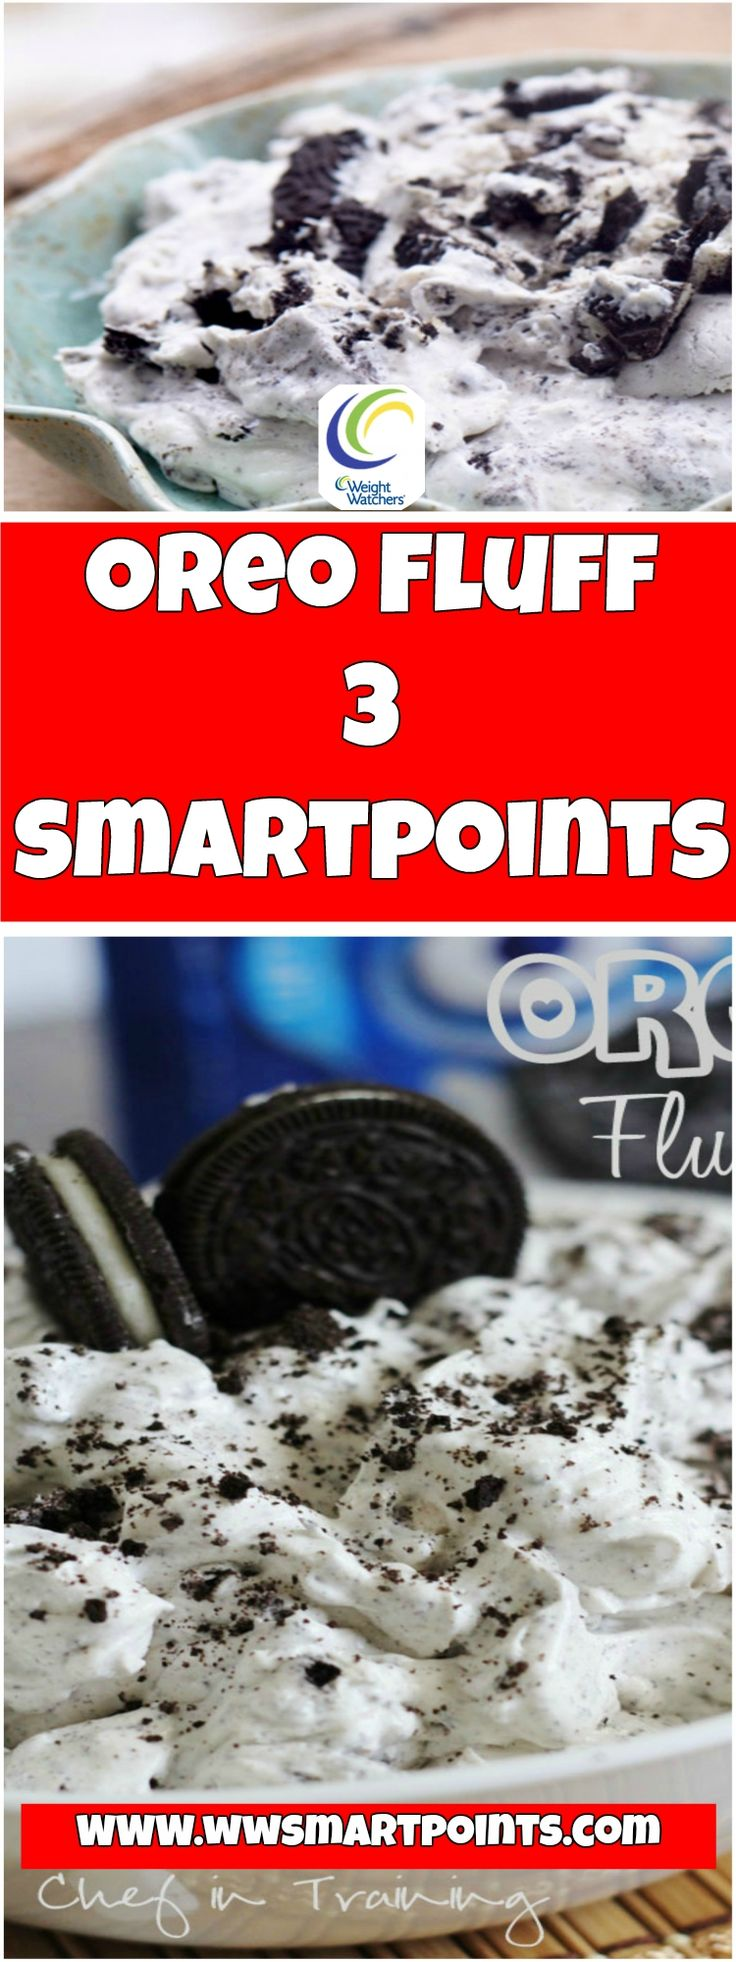 126 Best Smart Points Images On Pinterest Weights